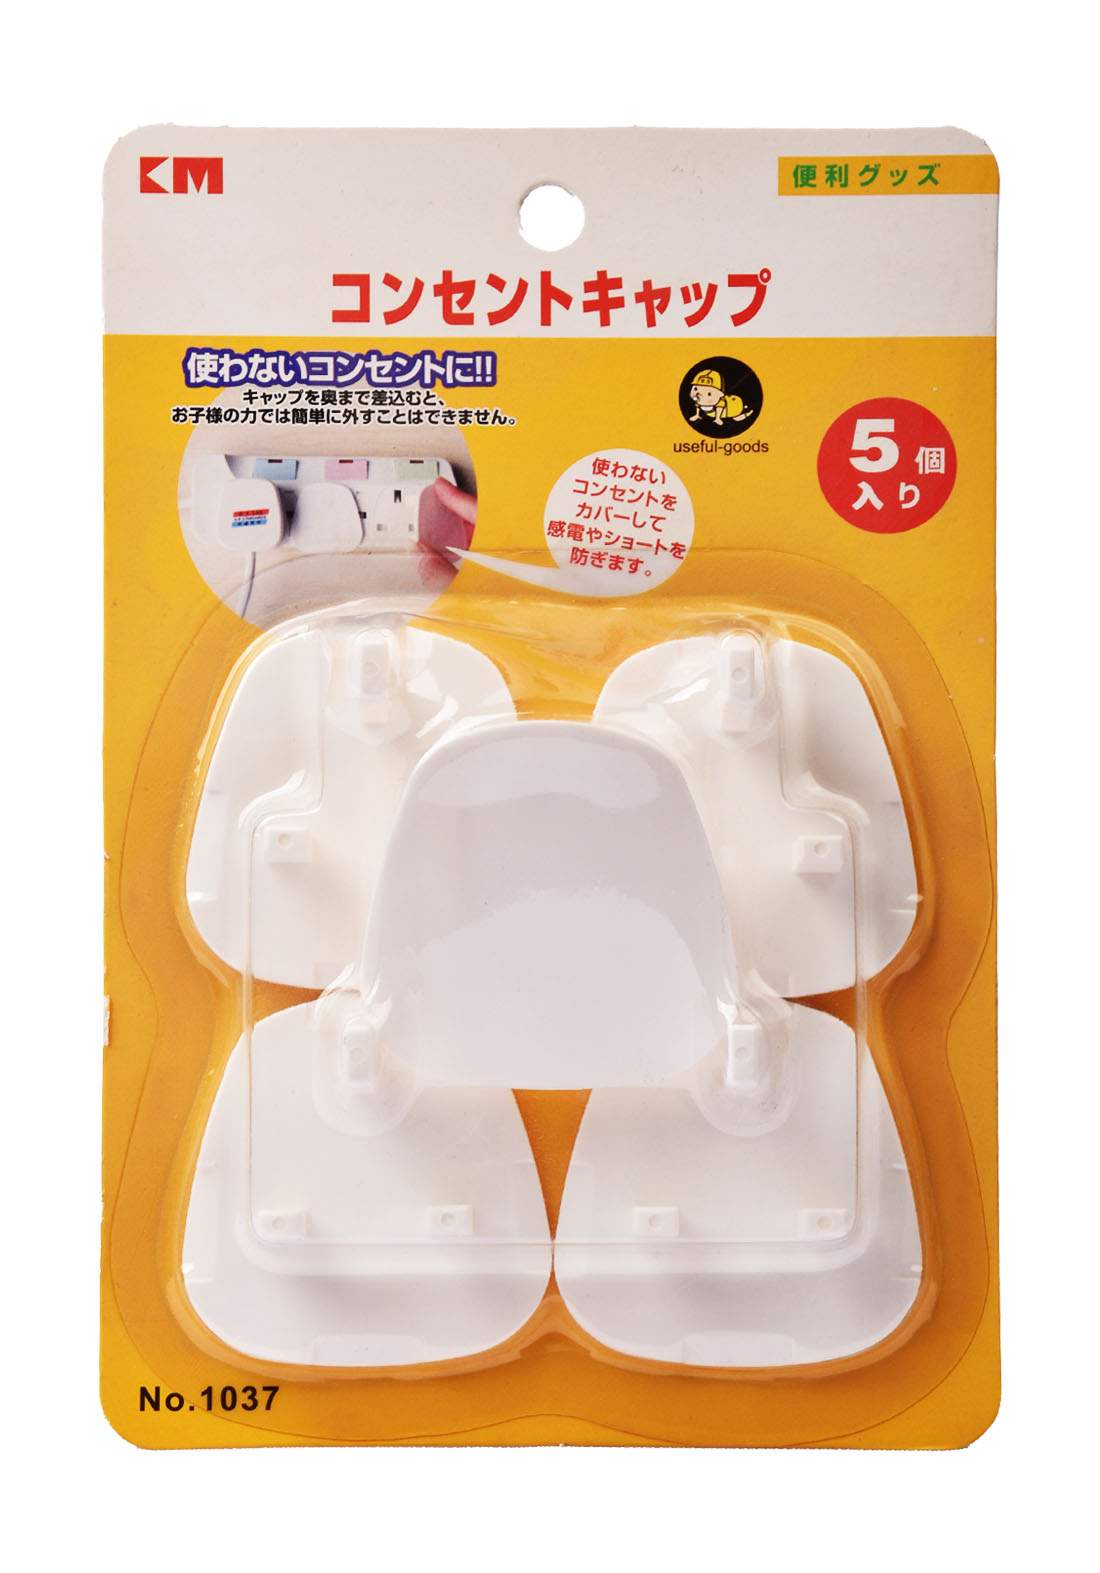 Safety Protector Guard Anti Electric Shock Plugs Protector Rotate غطاء مقبس